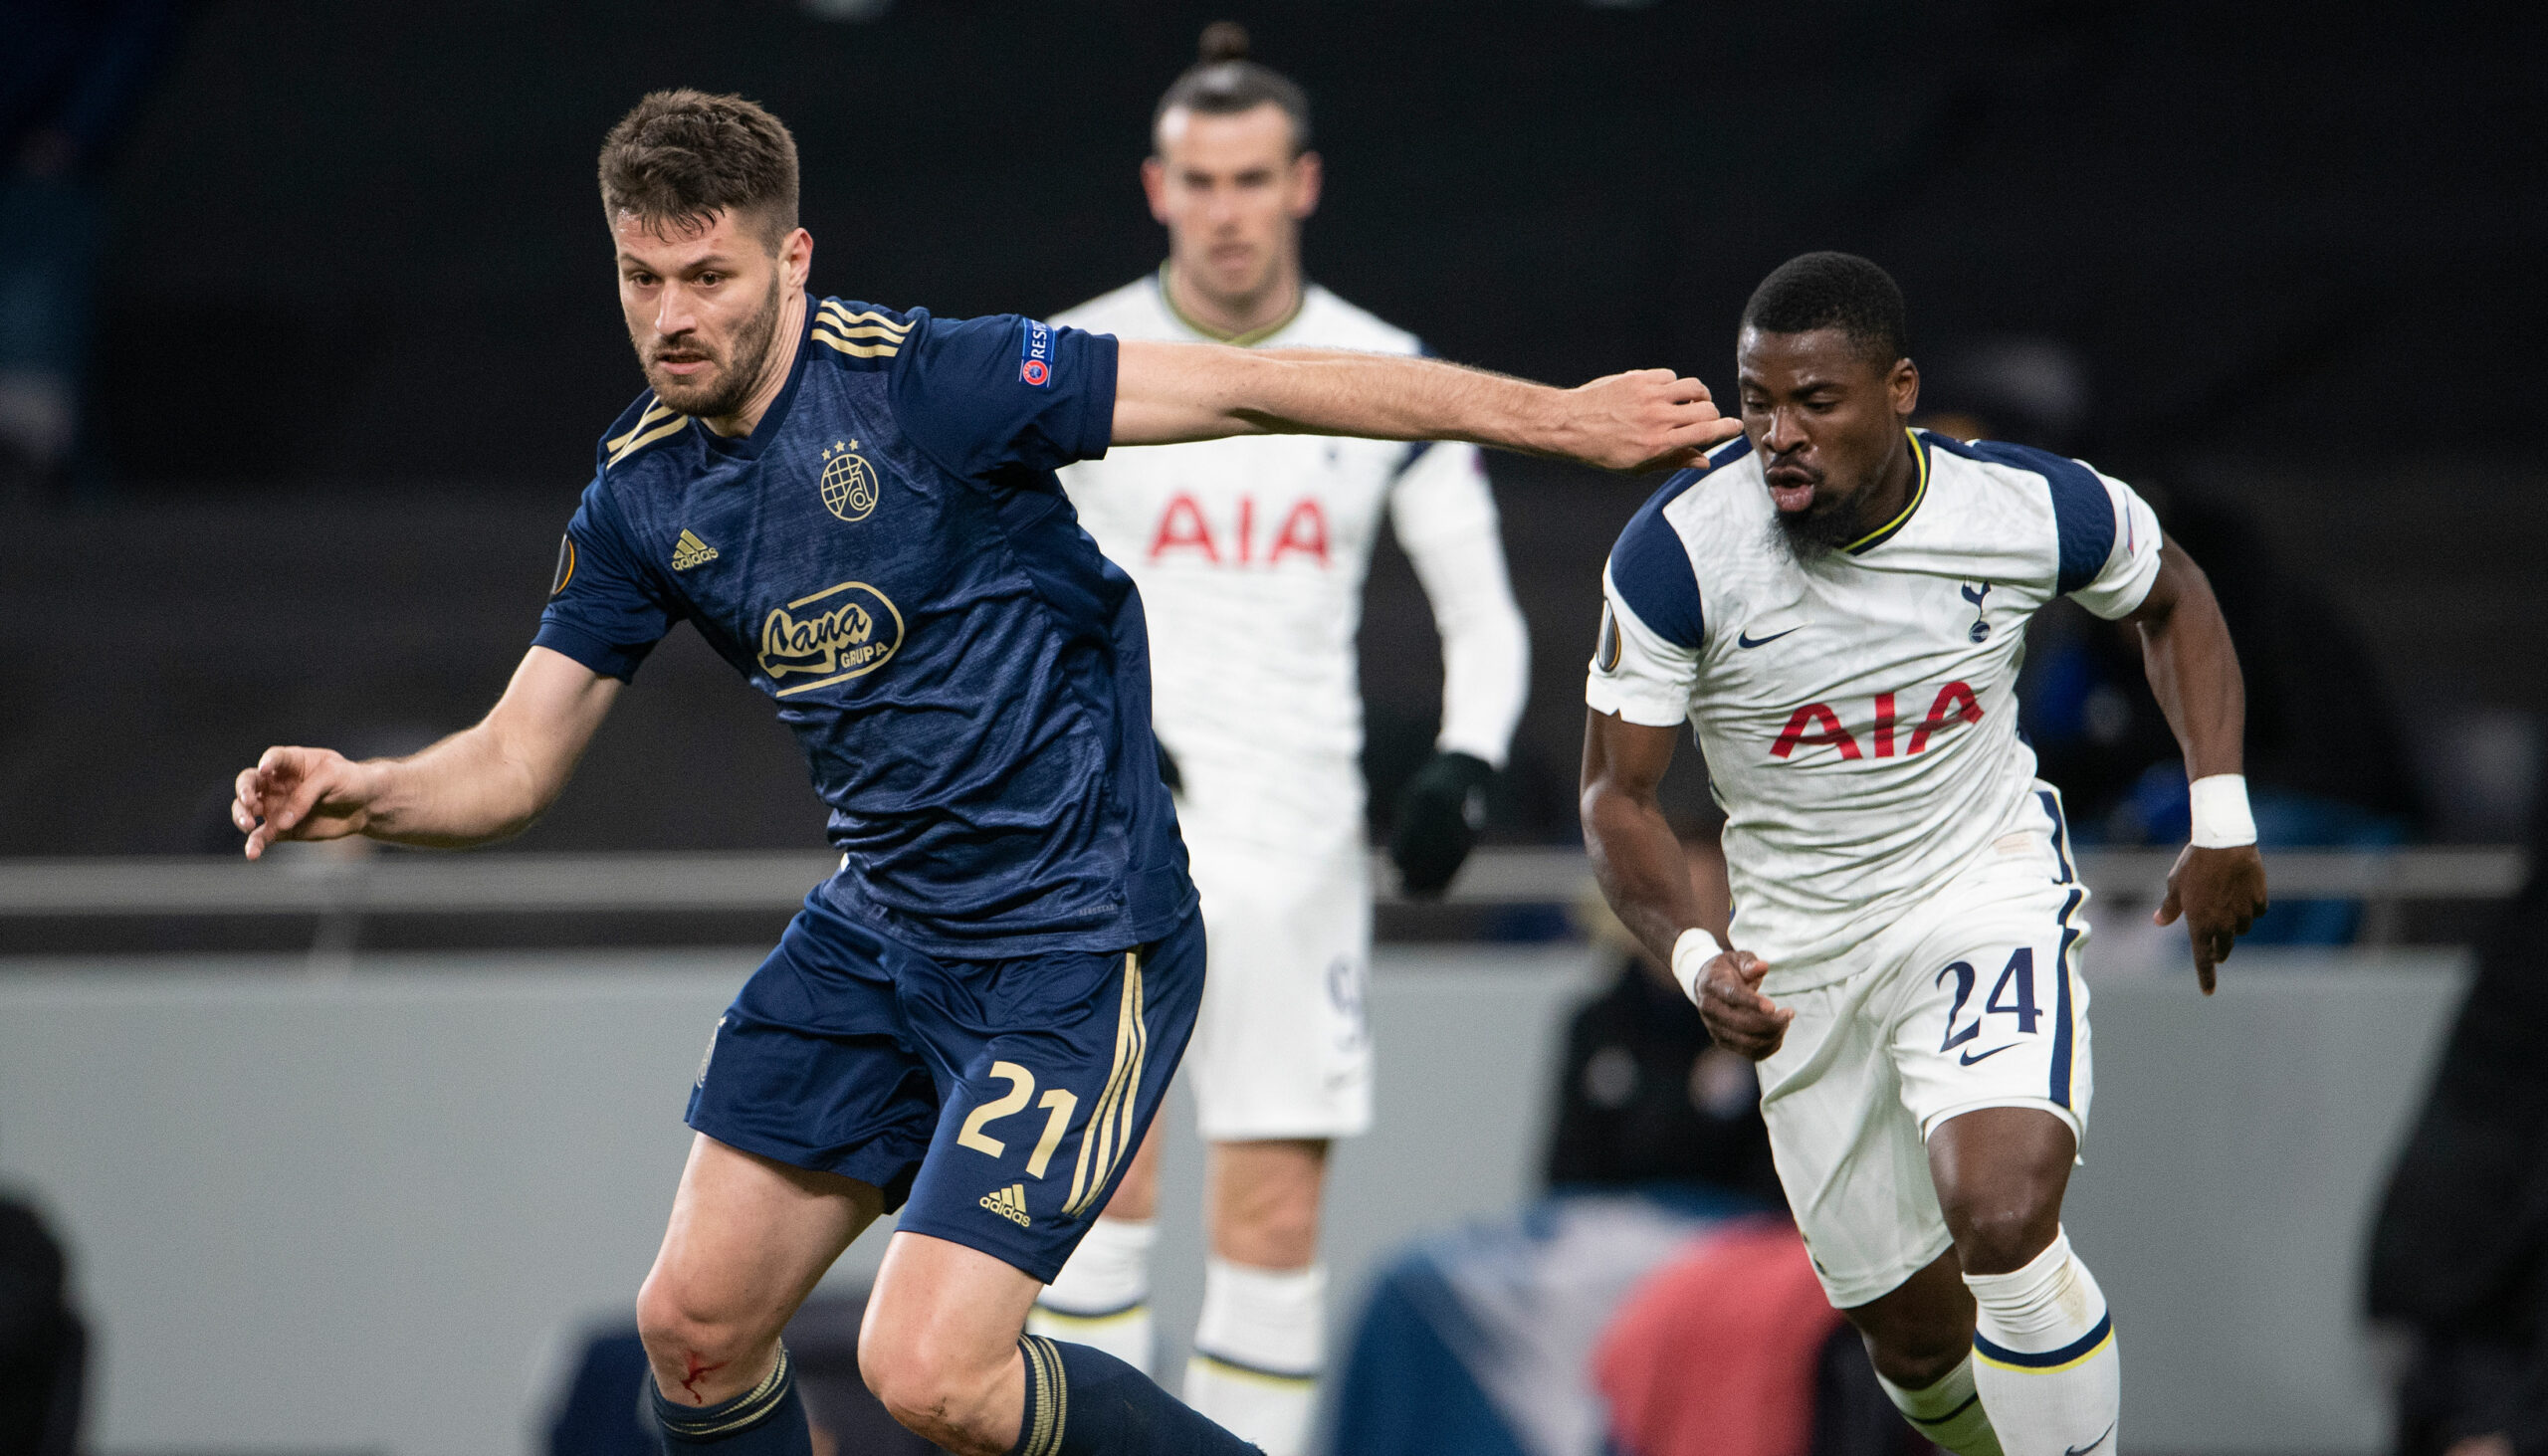 Dinamo Zagreb vs Tottenham: Spurs defence to see them through